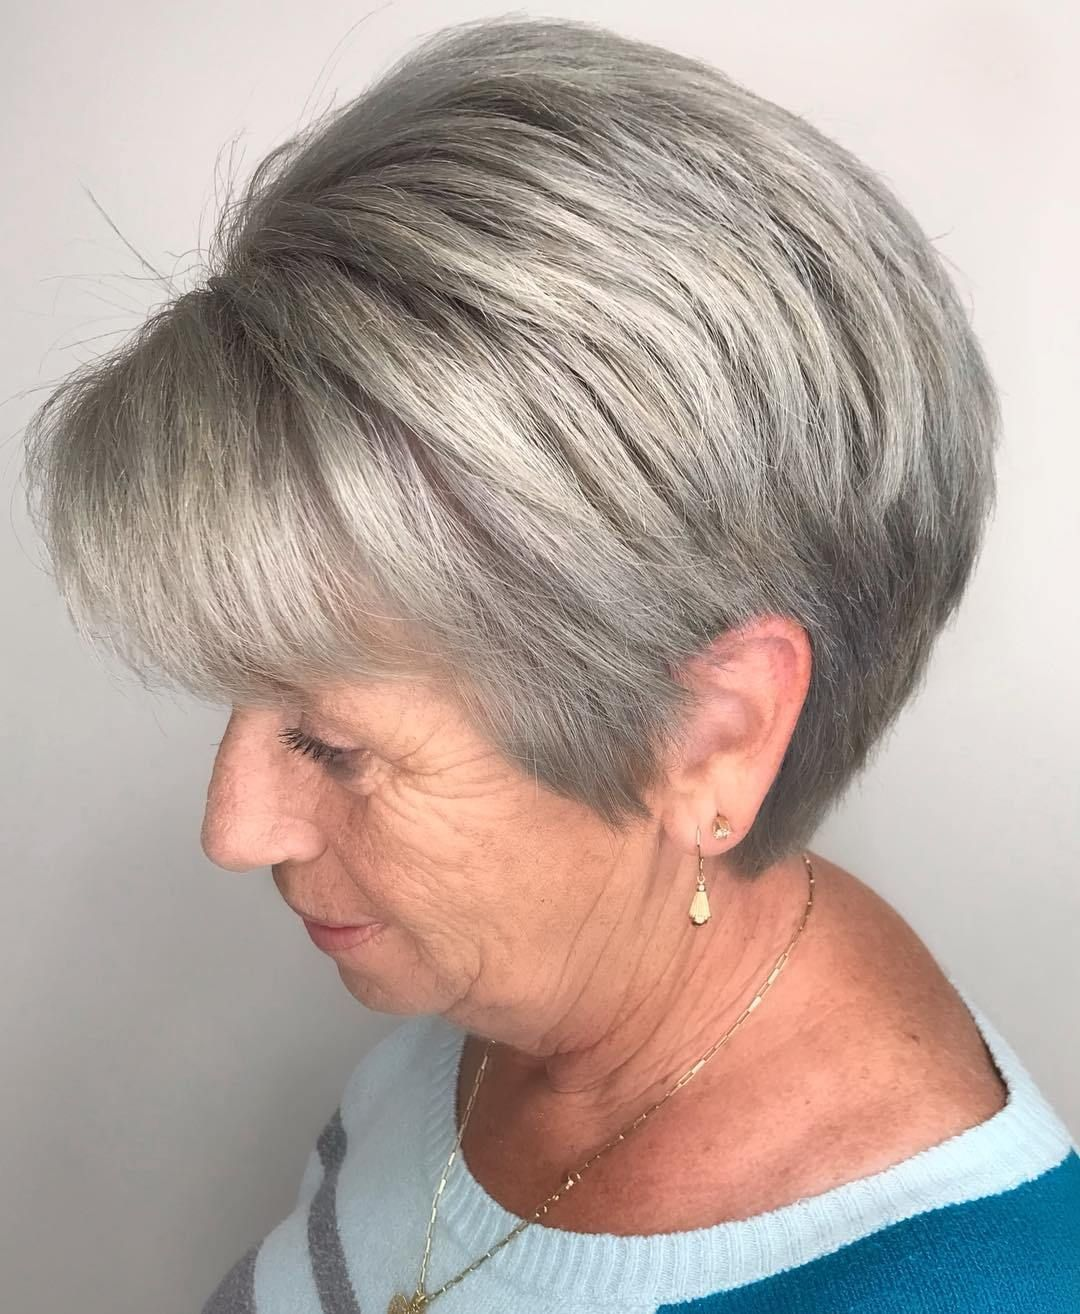 4+ Top Image Hairstyles For Grey Hair Over 4 4  Hot hair